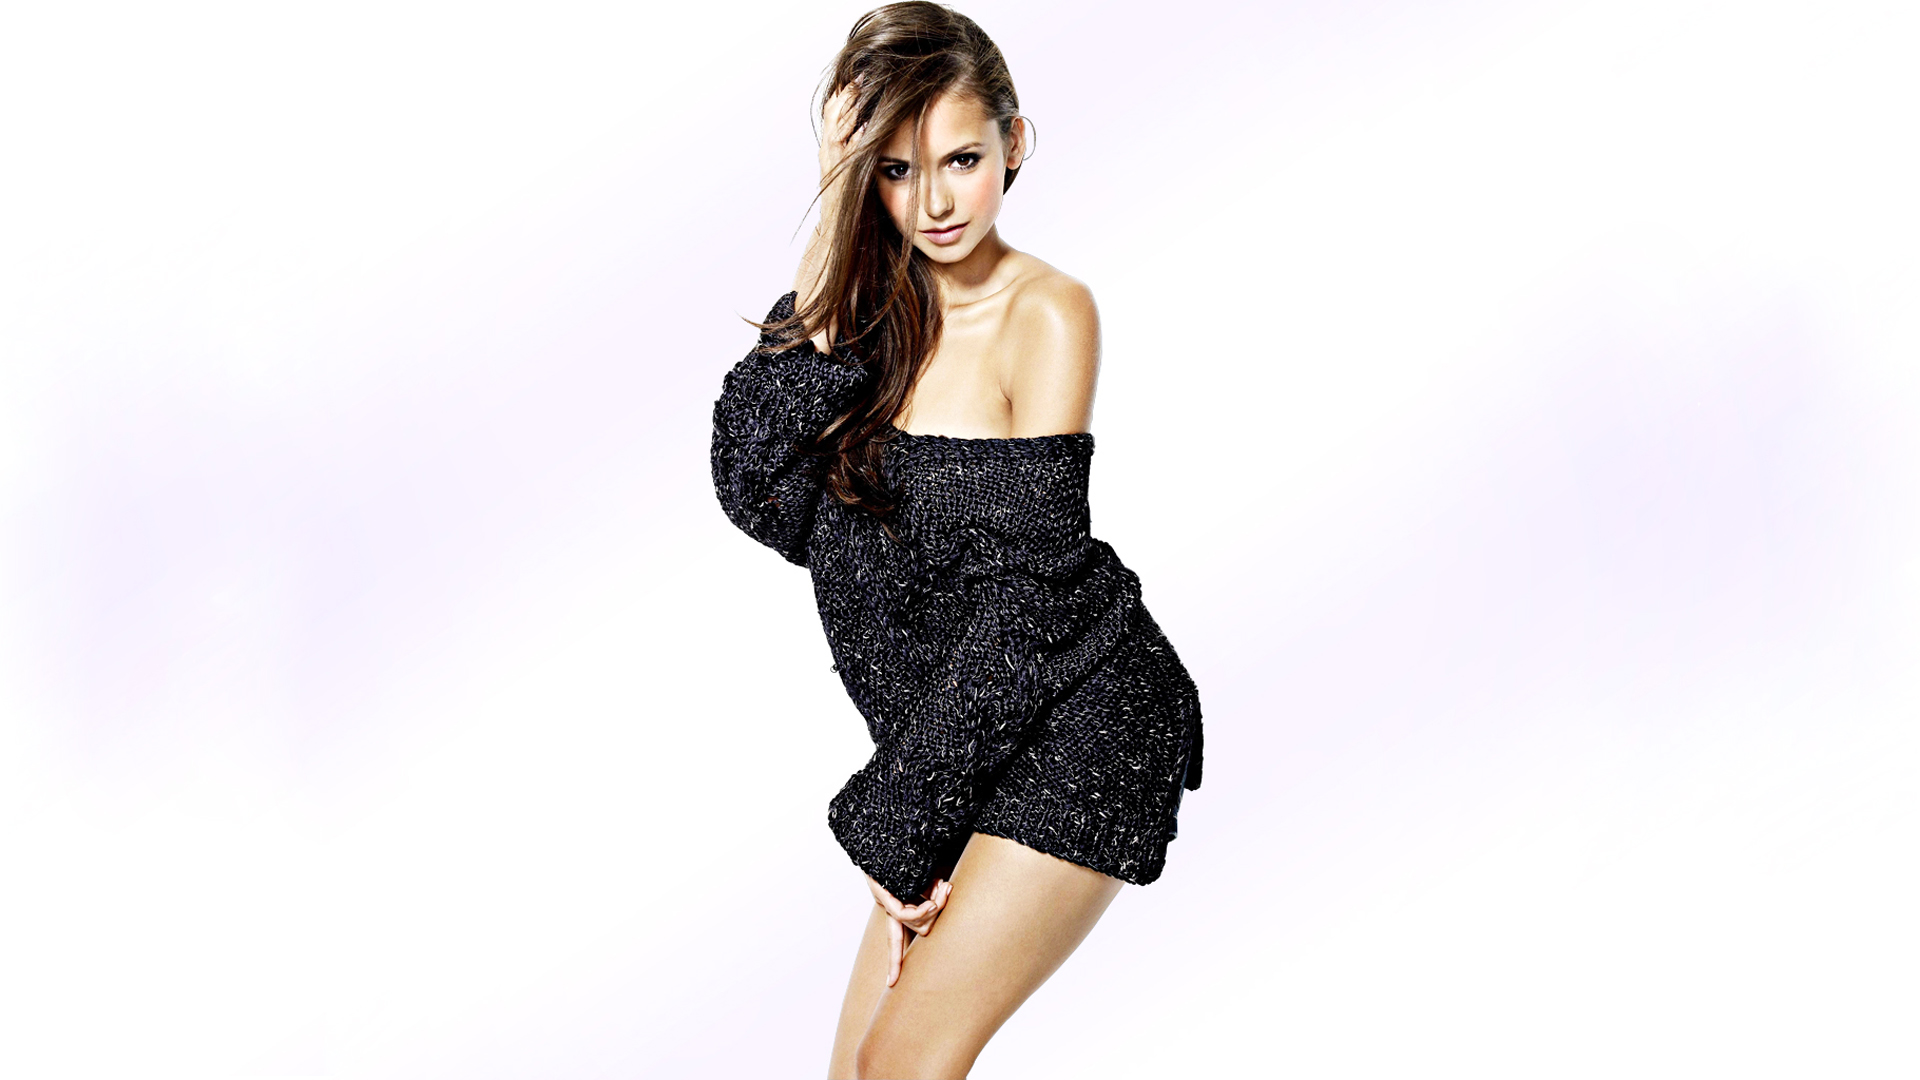 Photo: HQFX Nina Dobrev Wallpapers, by Suellen Kloster